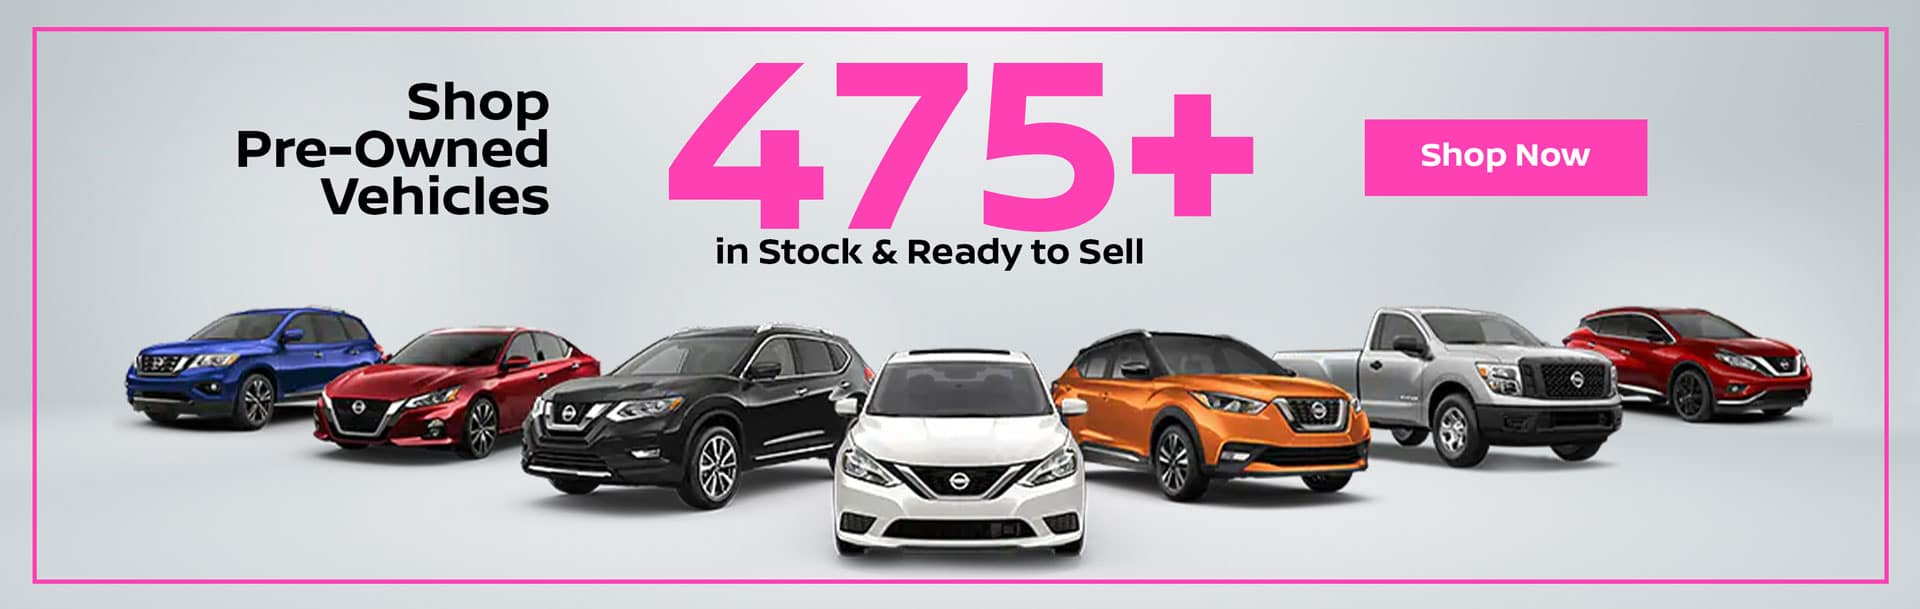 475+ Pre-Owned Vehicles in Stock